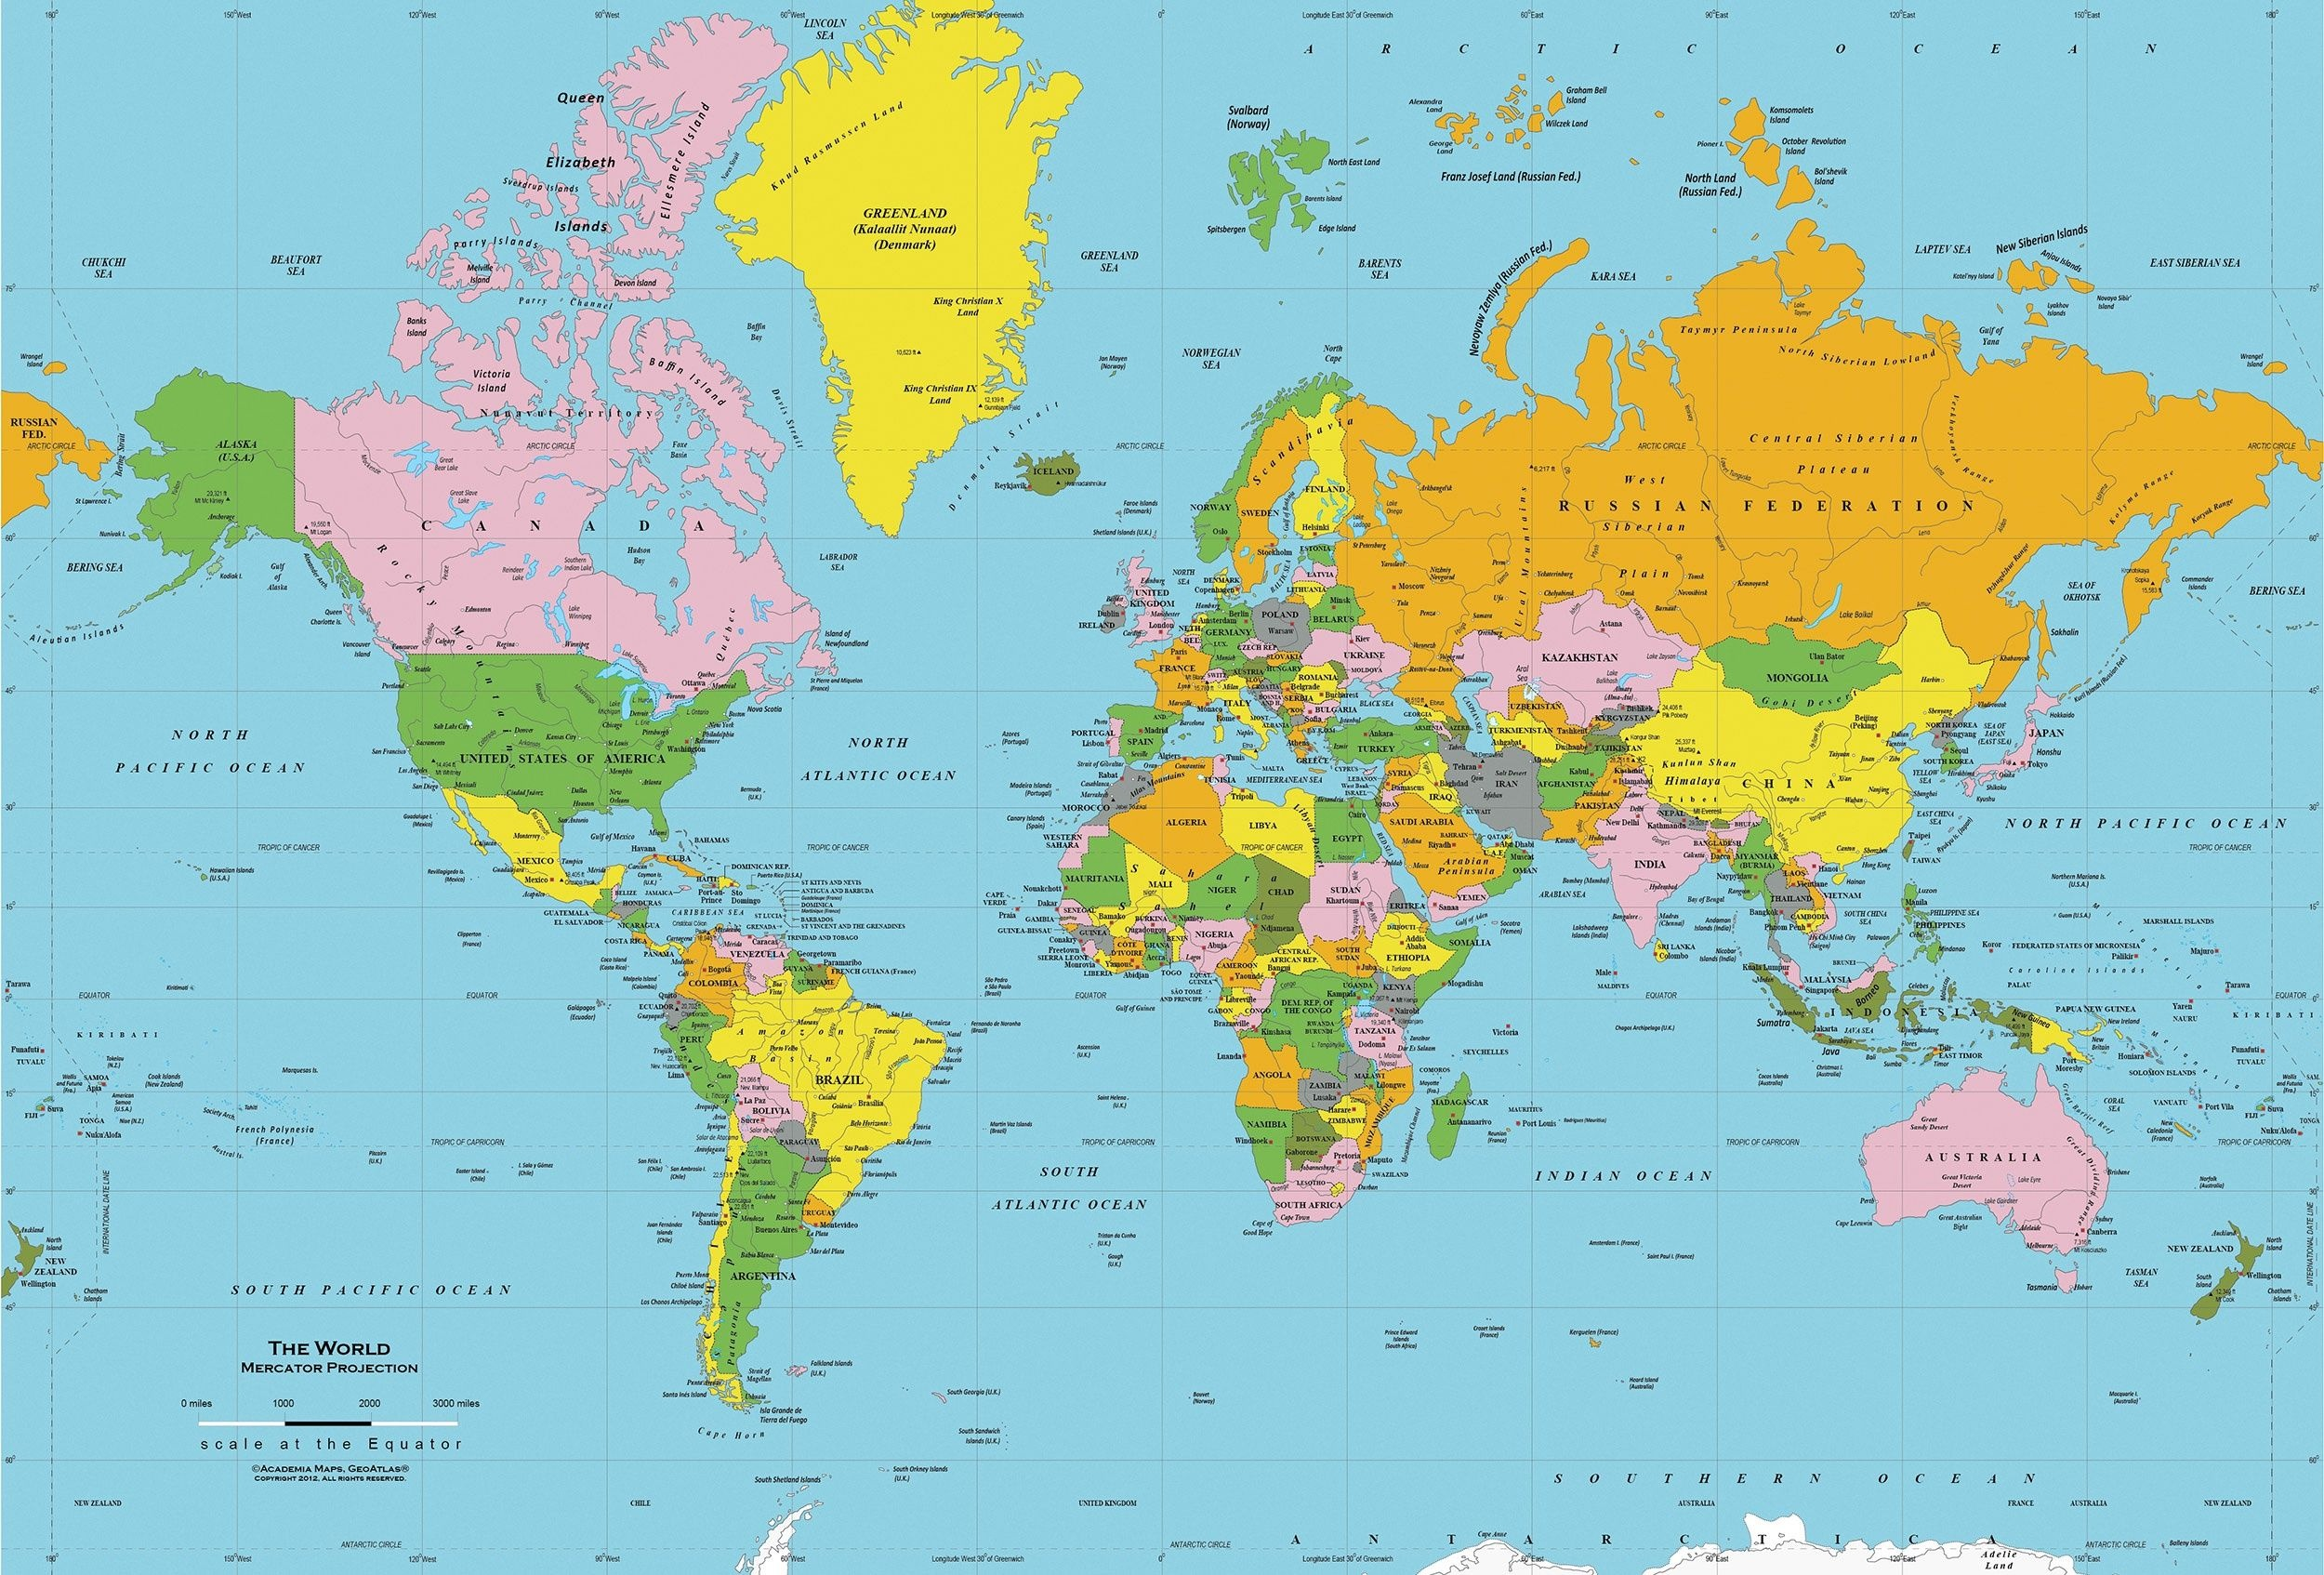 Printable World Map Free | Sitedesignco - Free Printable World Map Images